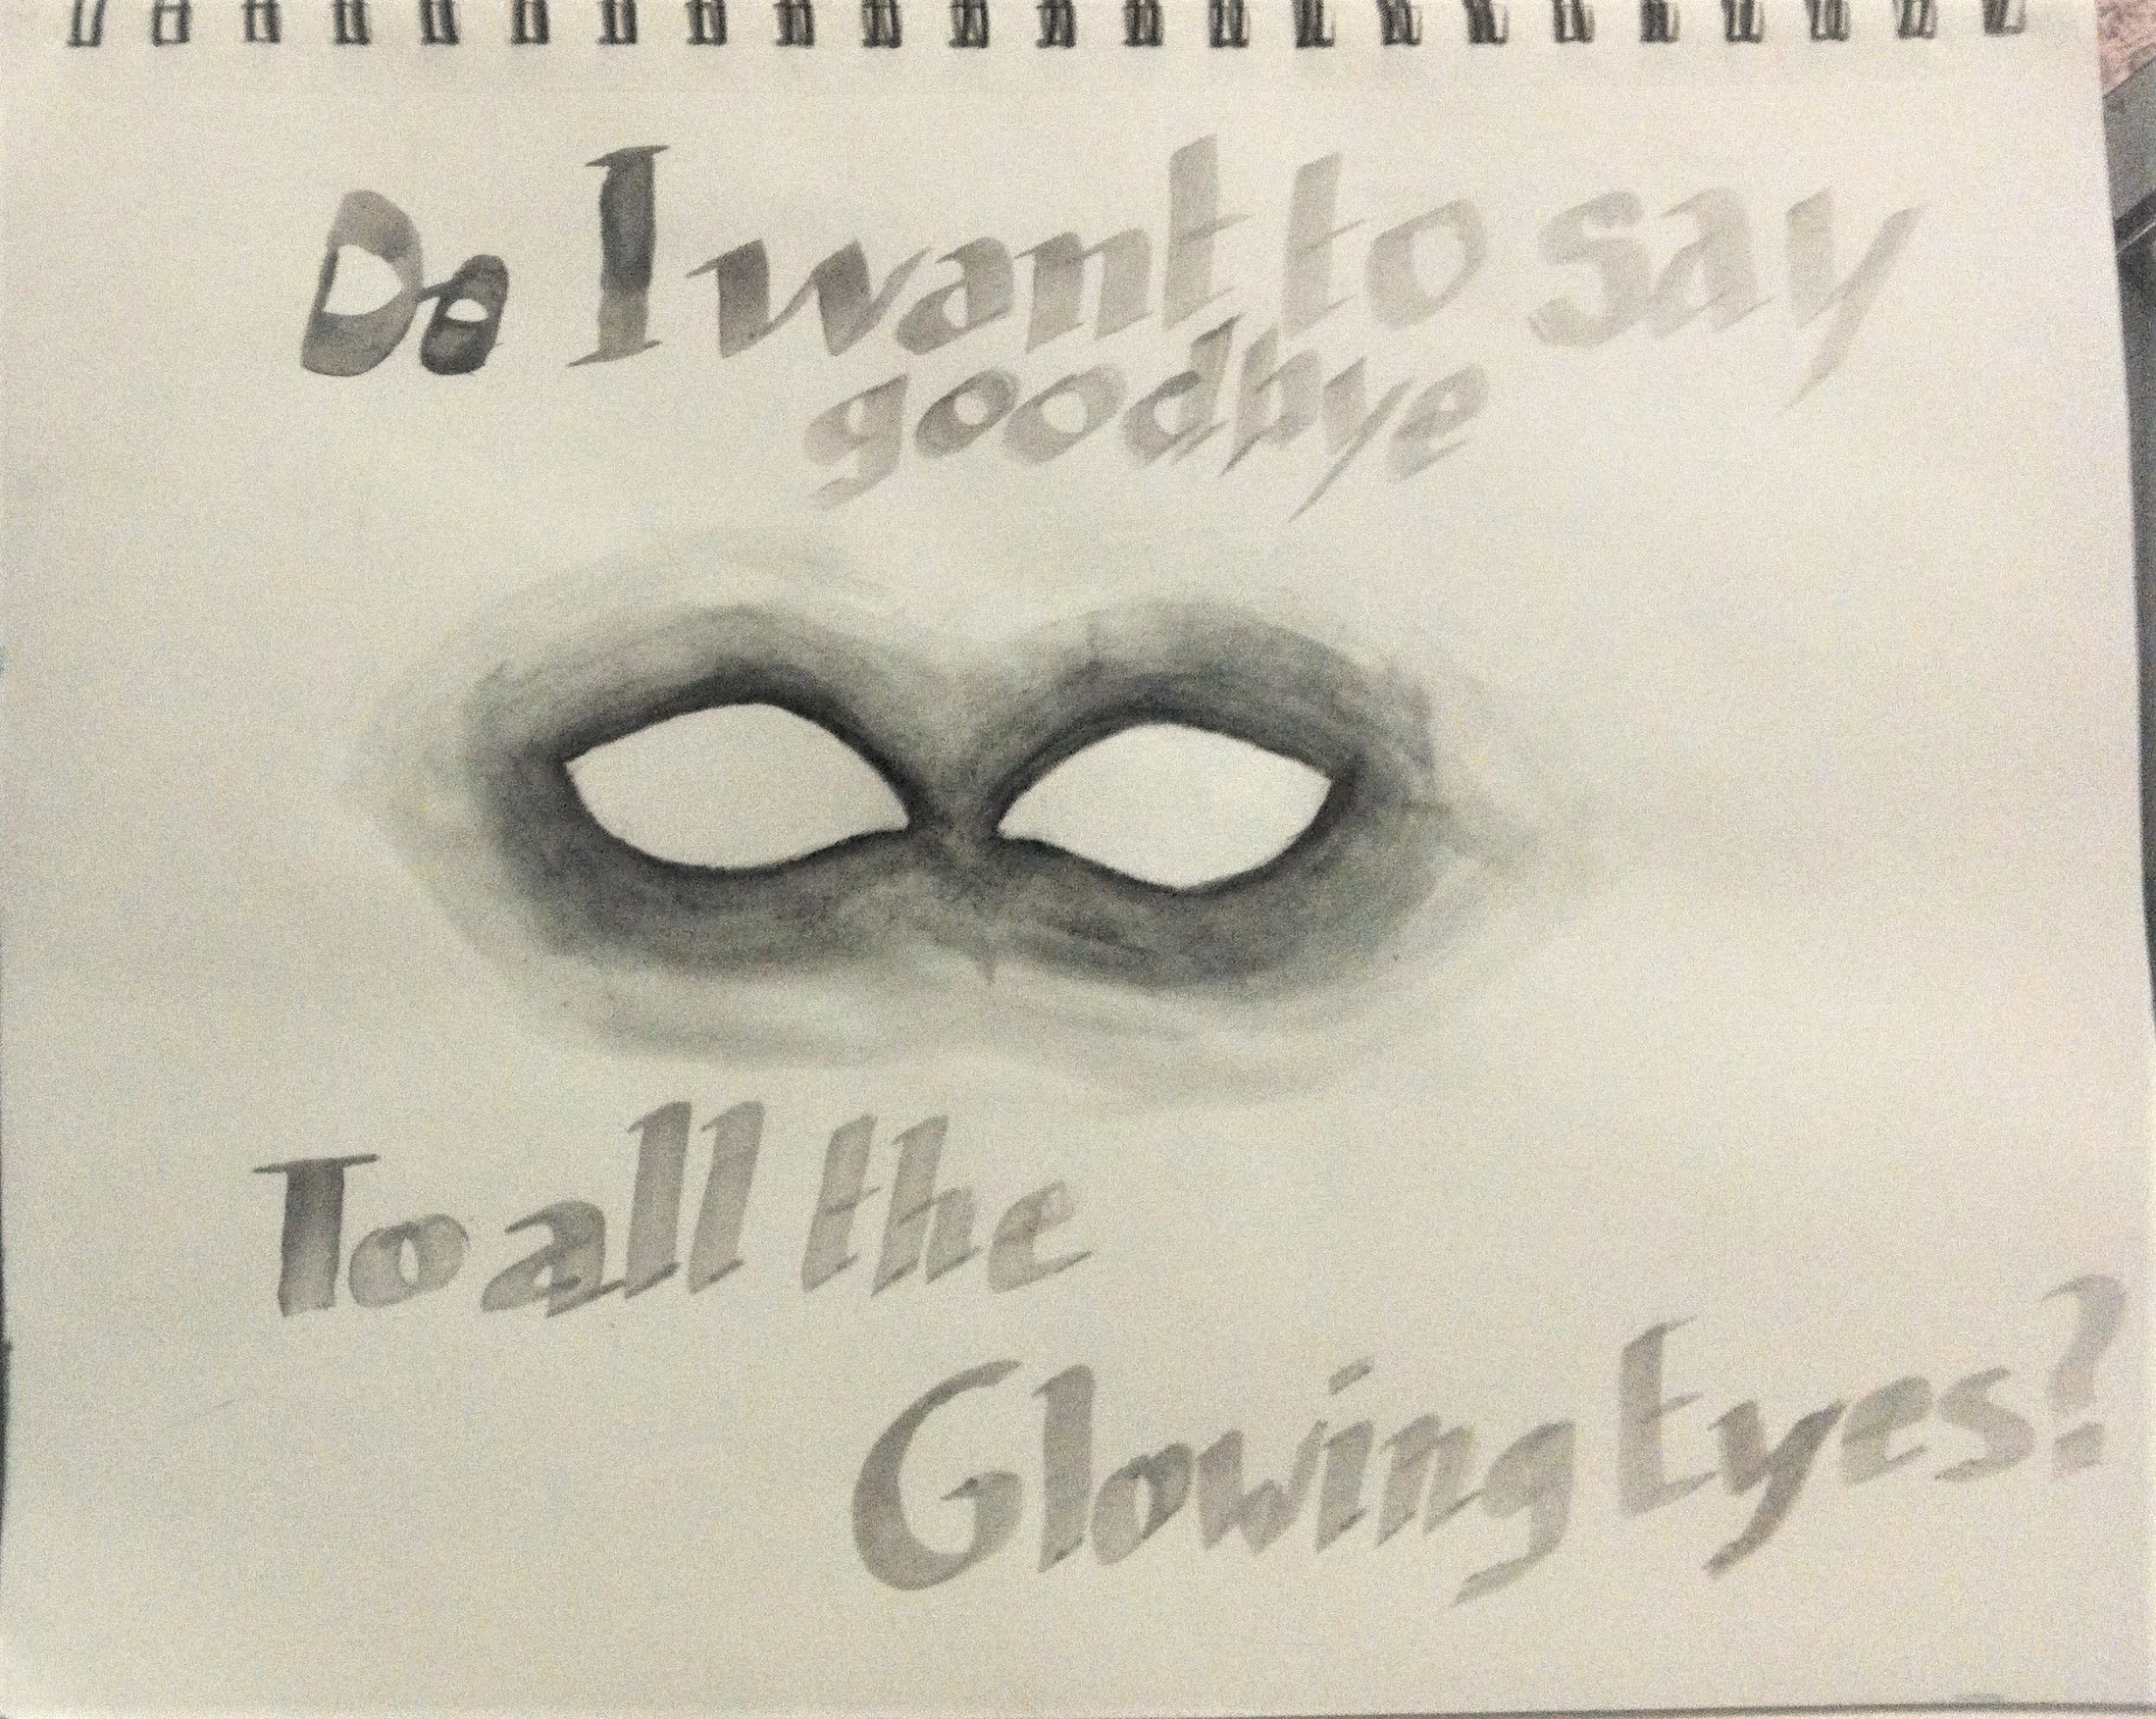 Glowing Eyes Lyrics